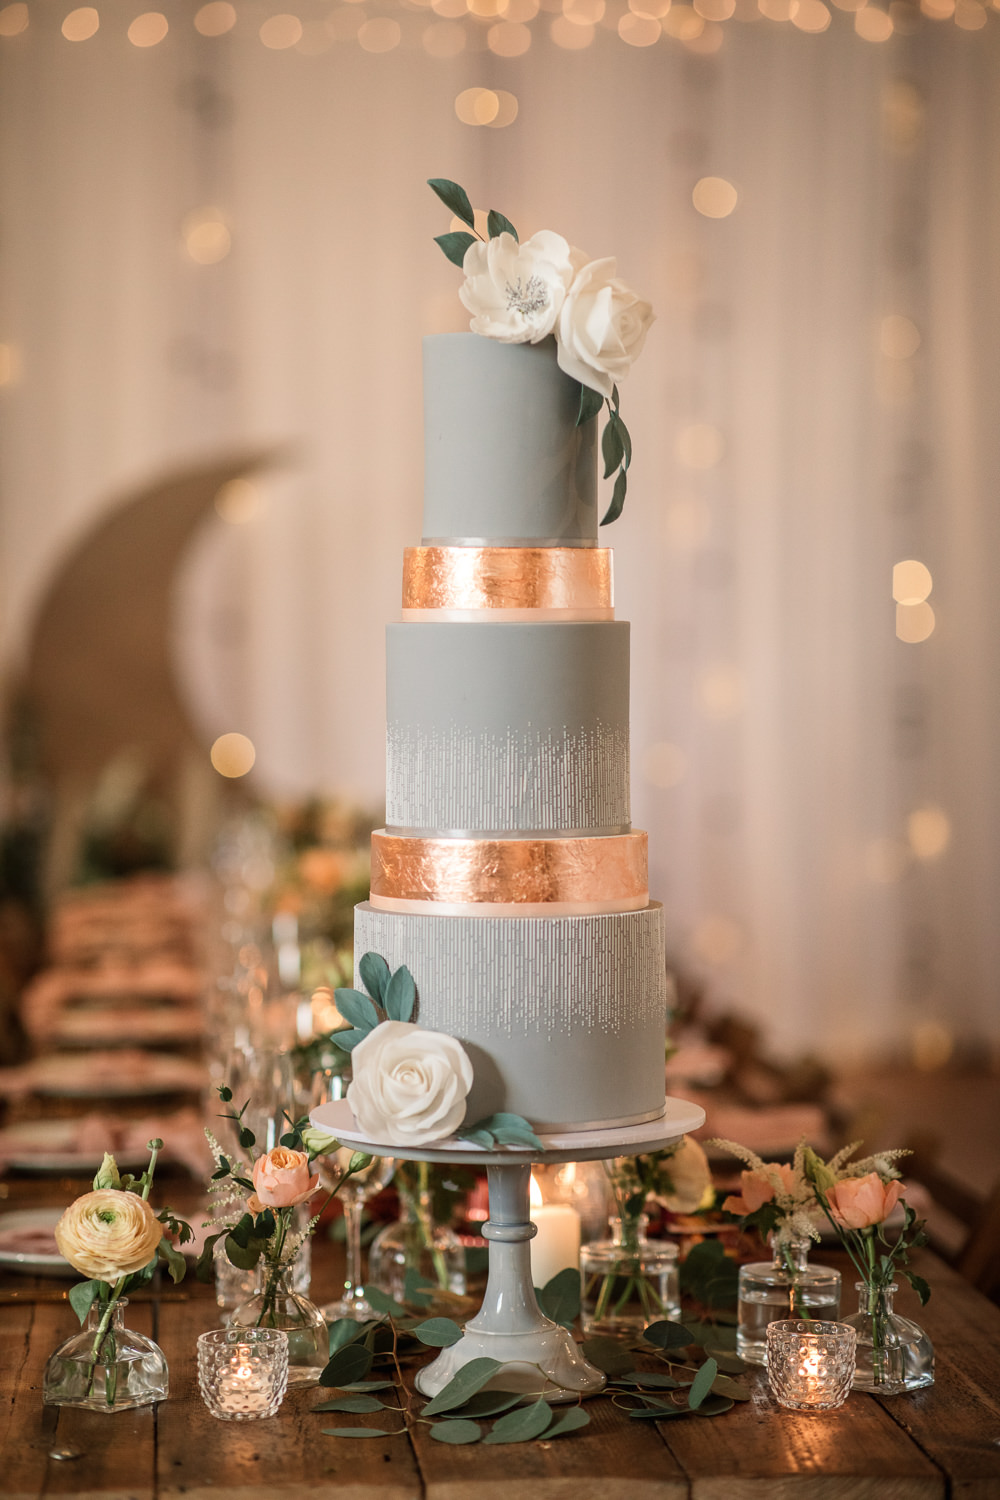 Blue Gold Cake Flowers Floral Candles Celestial Wedding Inspiration Becky Harley Photography